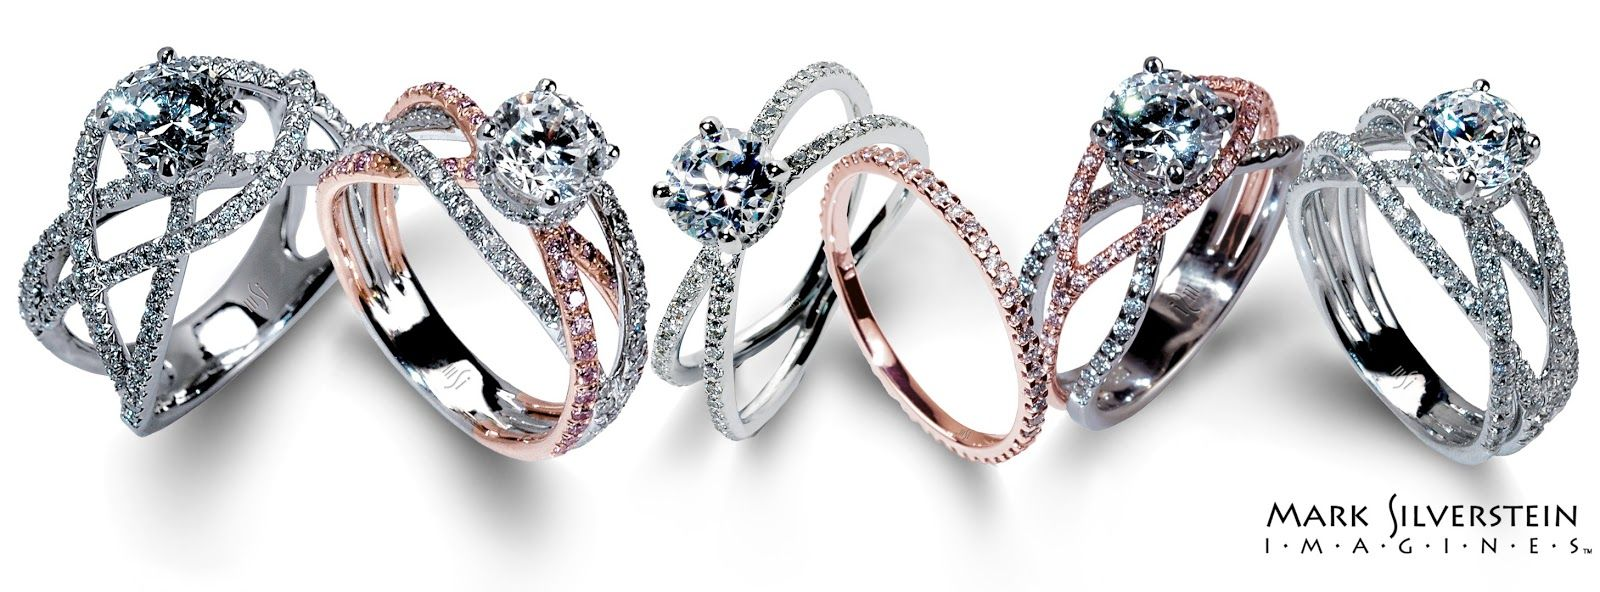 Top 5 Engagement Rings By Mark Silverstein Imagines Arthurs